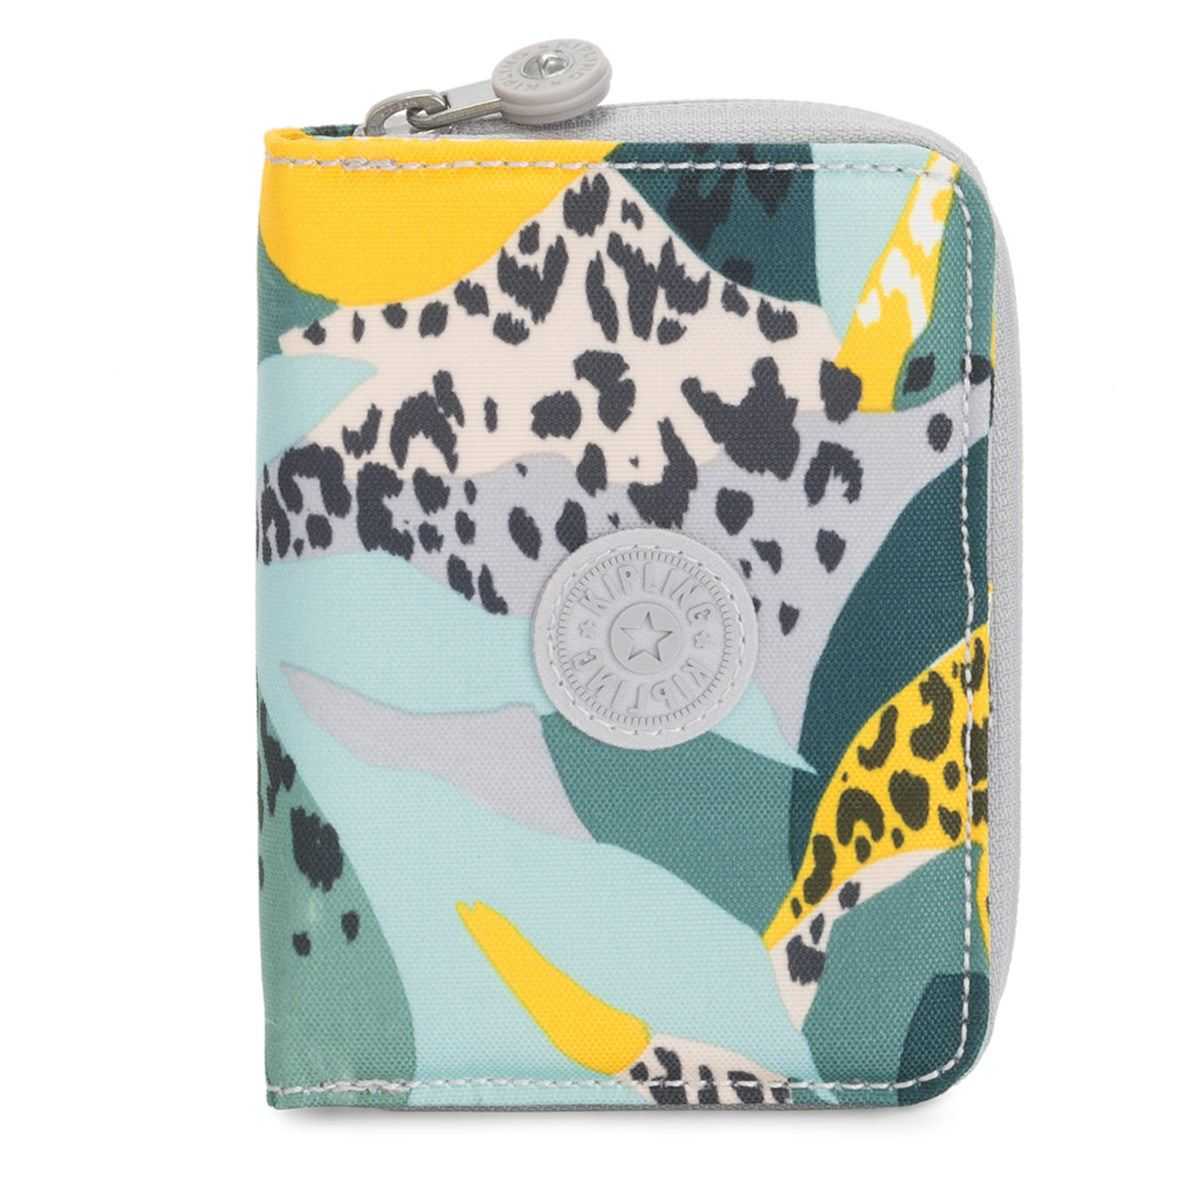 Cartera Kipling Money Love Jungle Para Dama